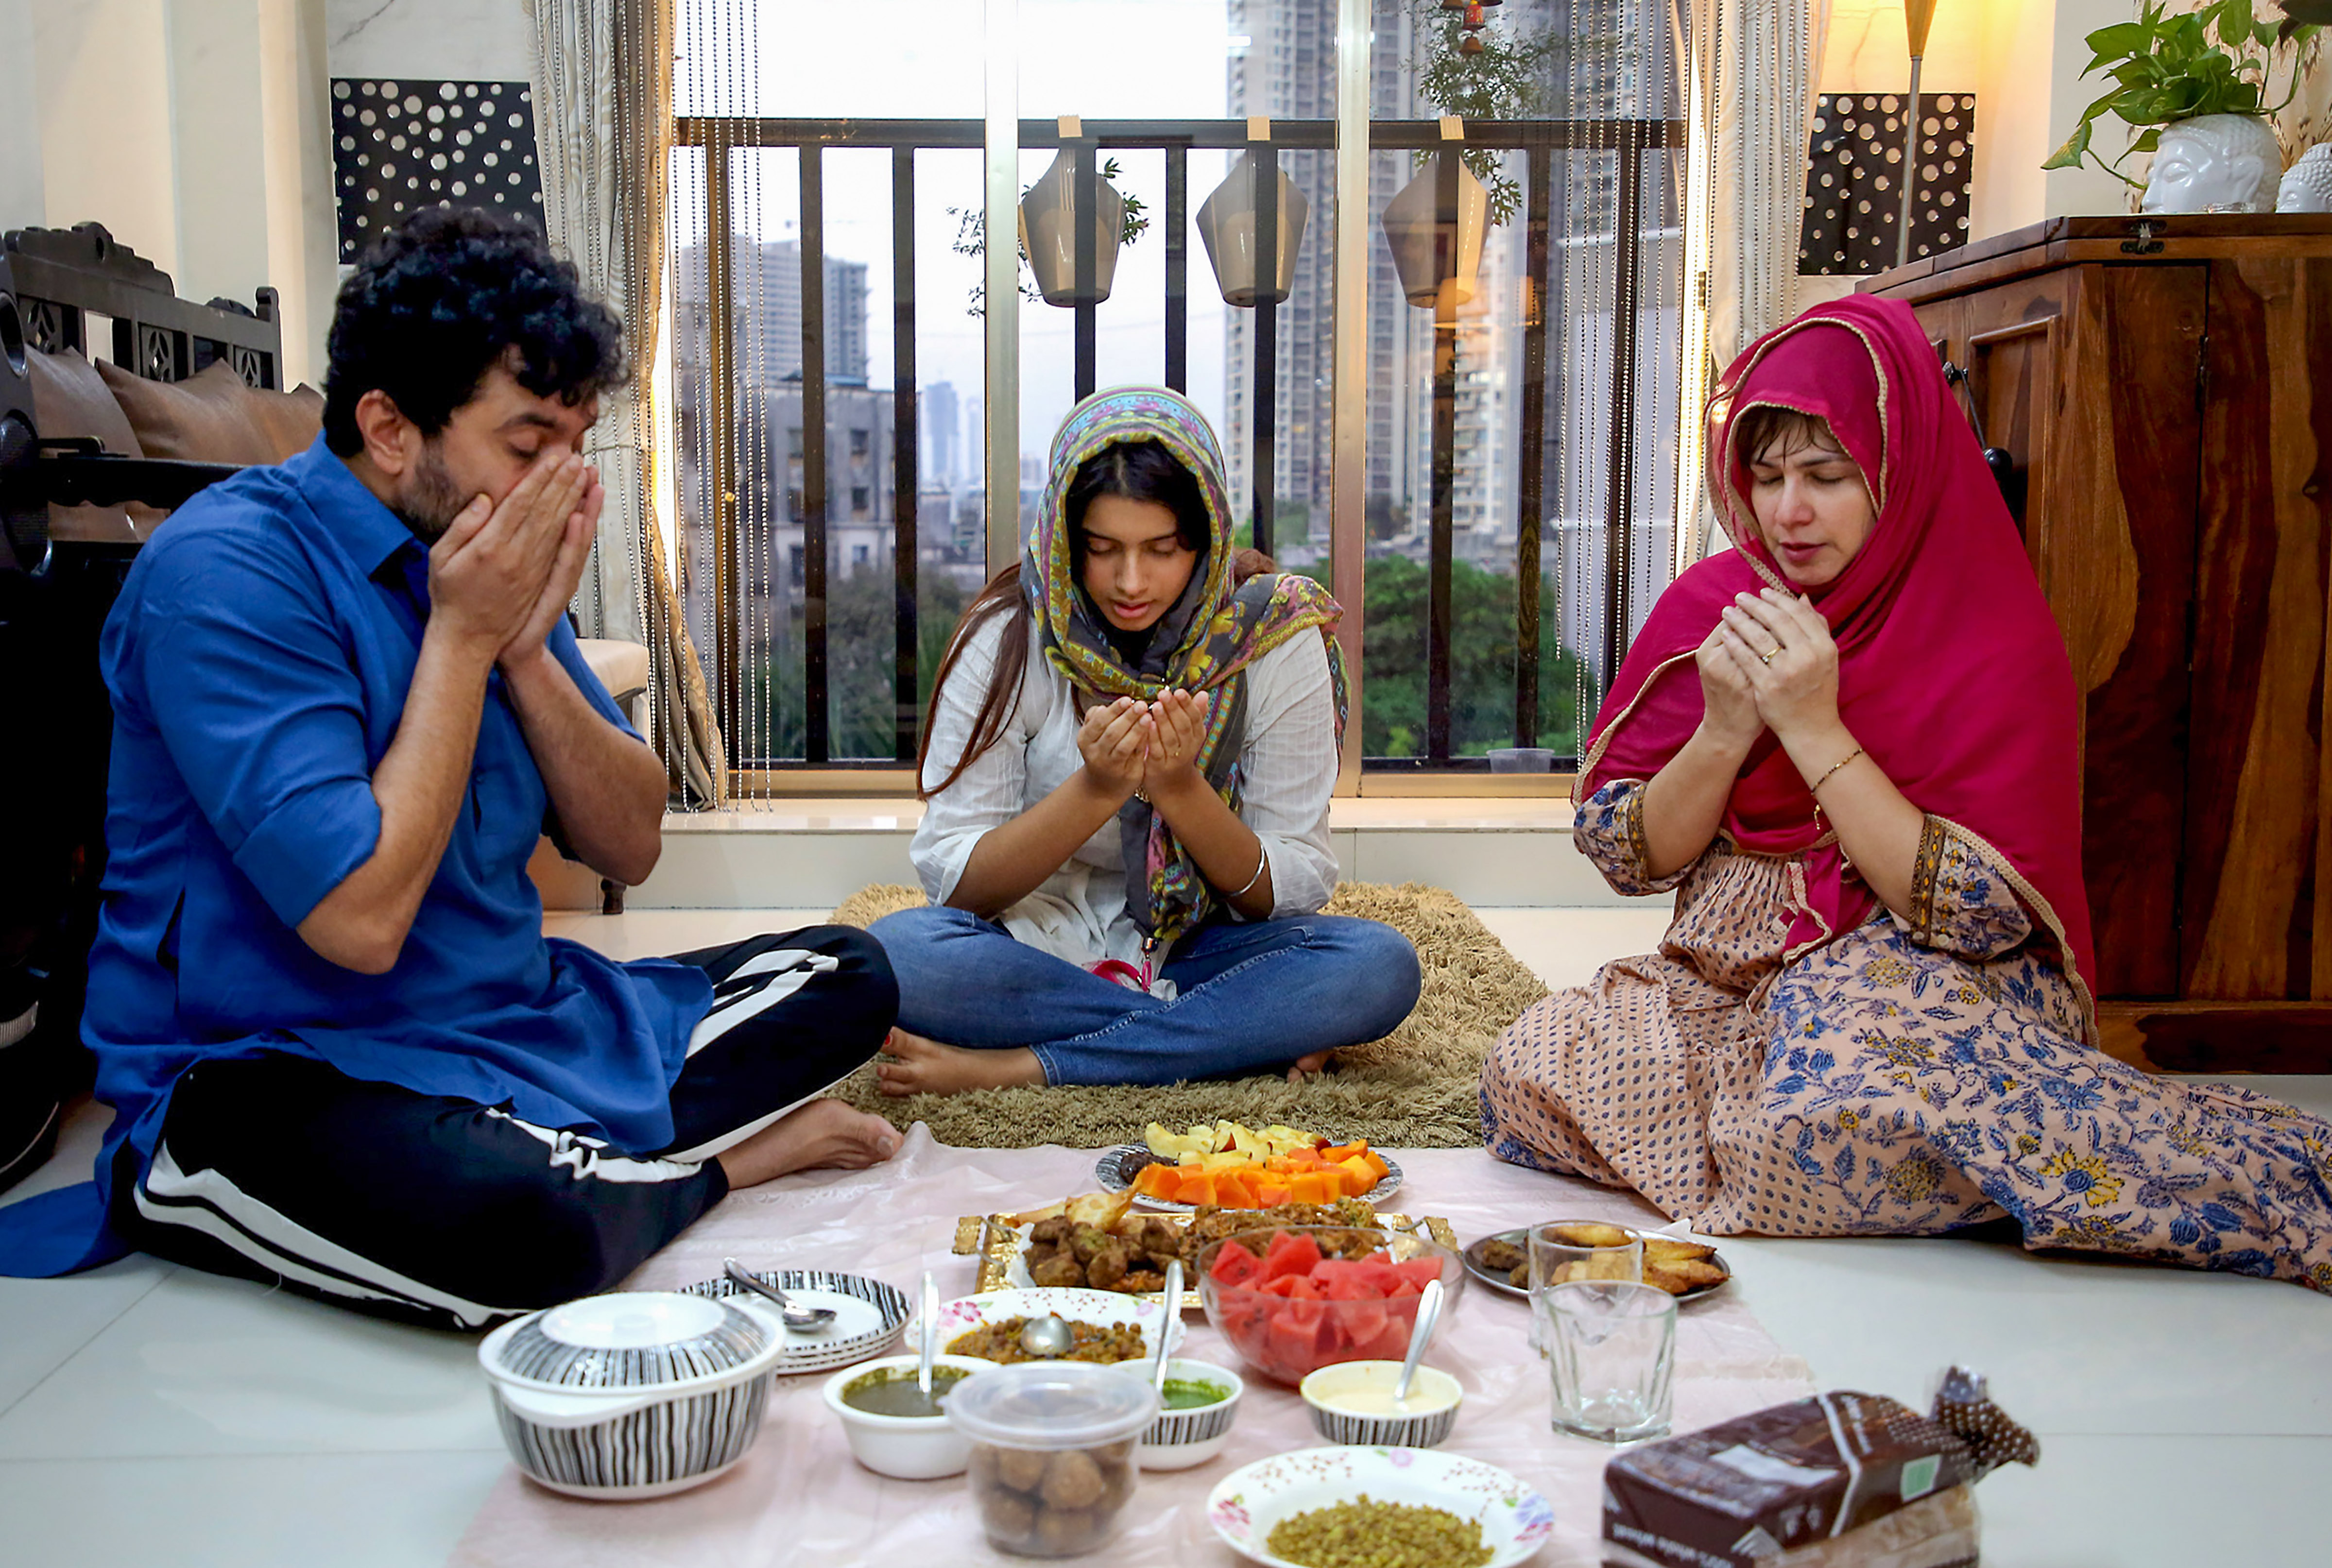 A Muslim family offers prayers before opening their fast with iftar on the first day of holy month of Ramzan during a nationwide lockdown imposed to contain the spread of coronavirus, in Mumbai, Saturday, April 25, 2020